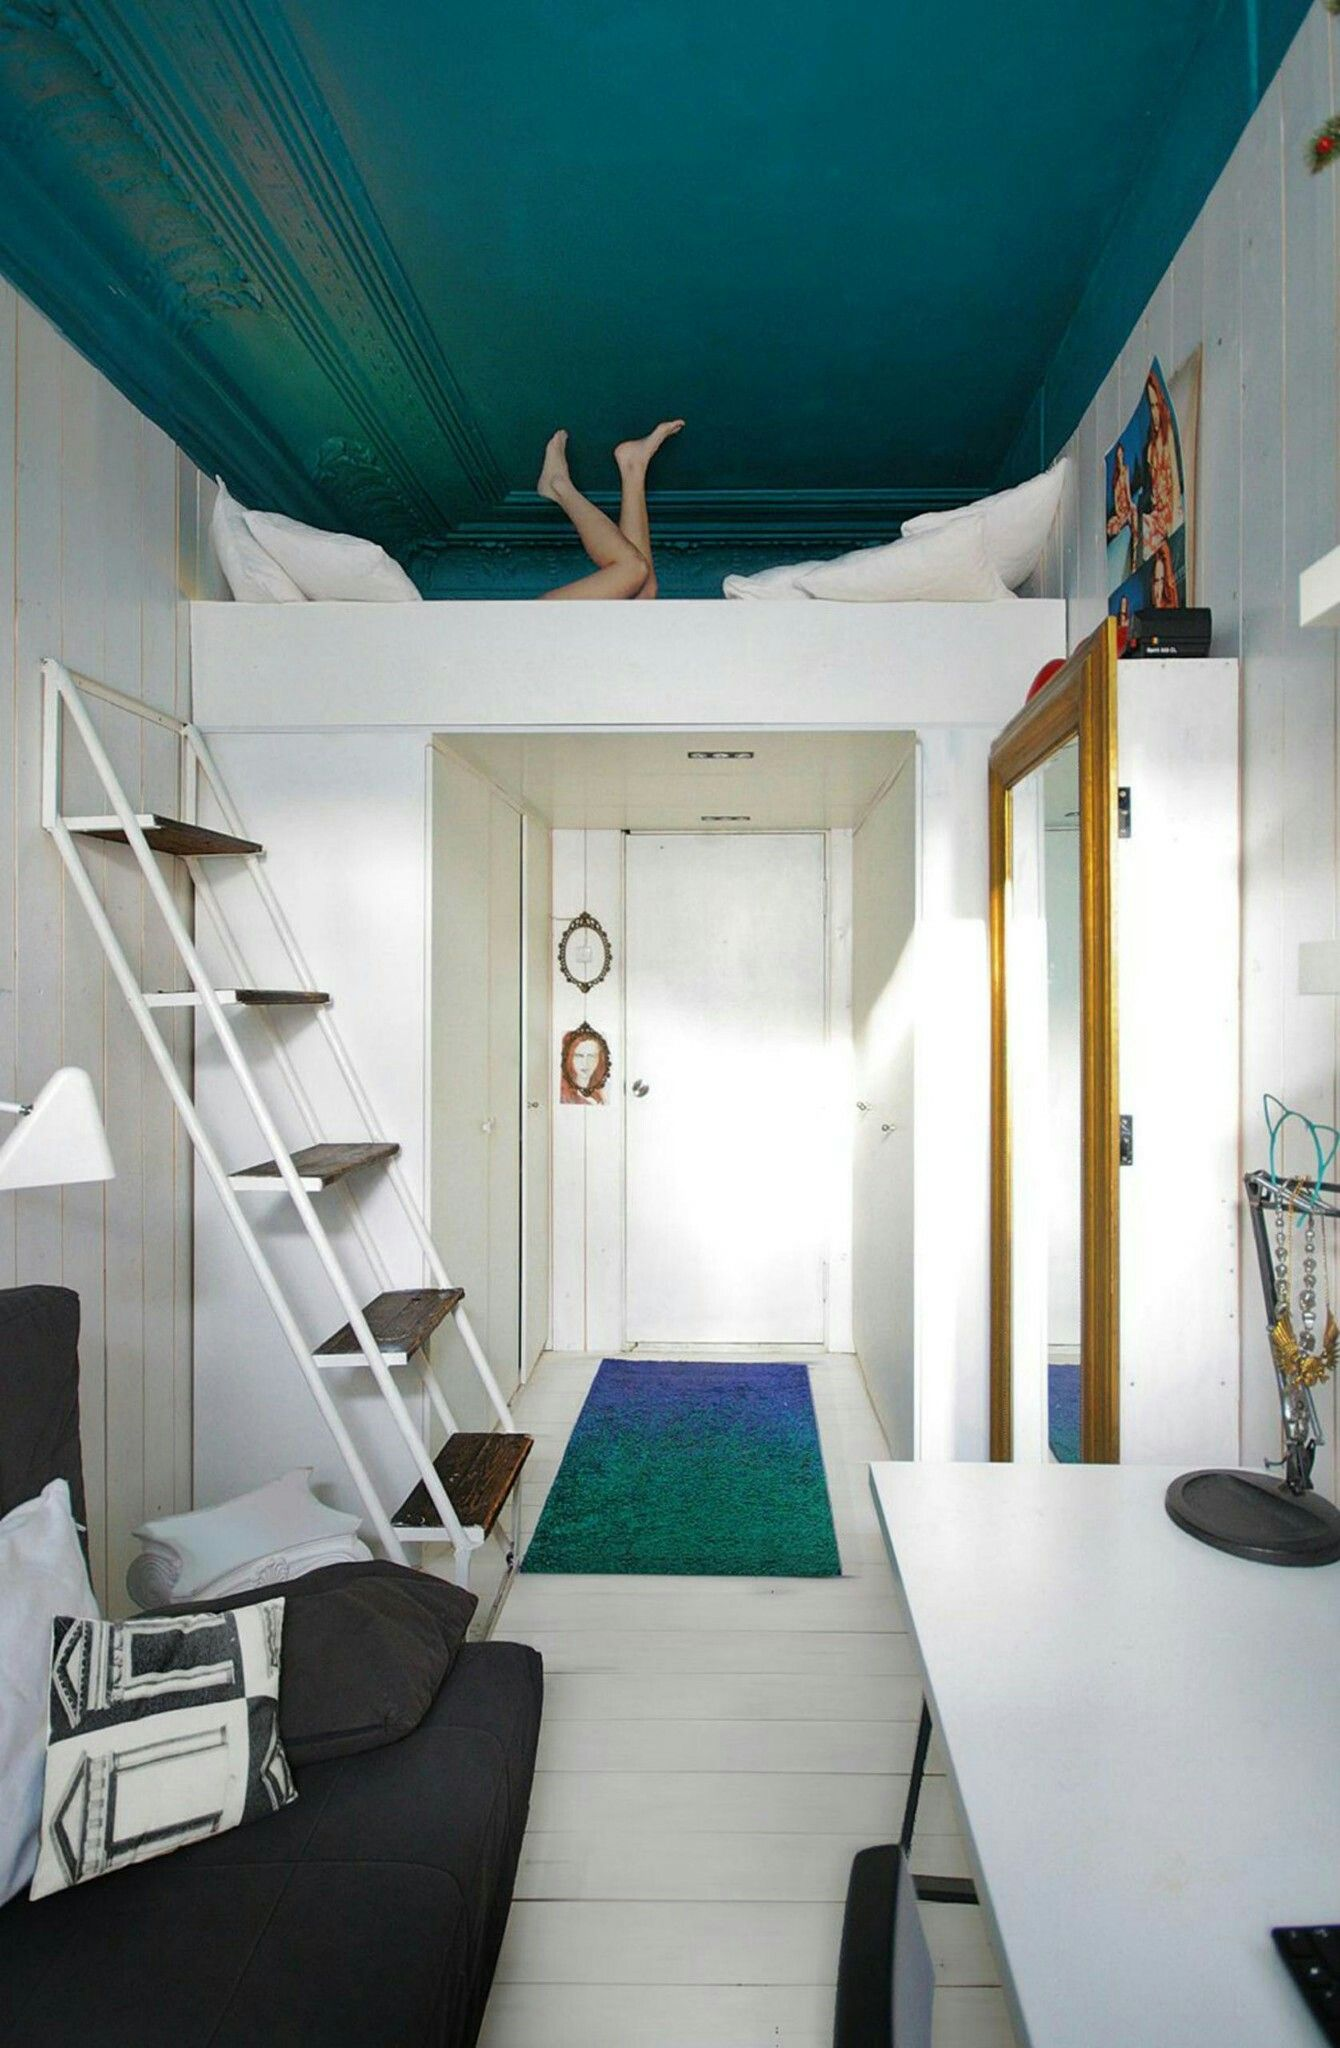 High loft bed with stairs  Sleeping pod  Home Decor Accessories  Pinterest  Tiny houses